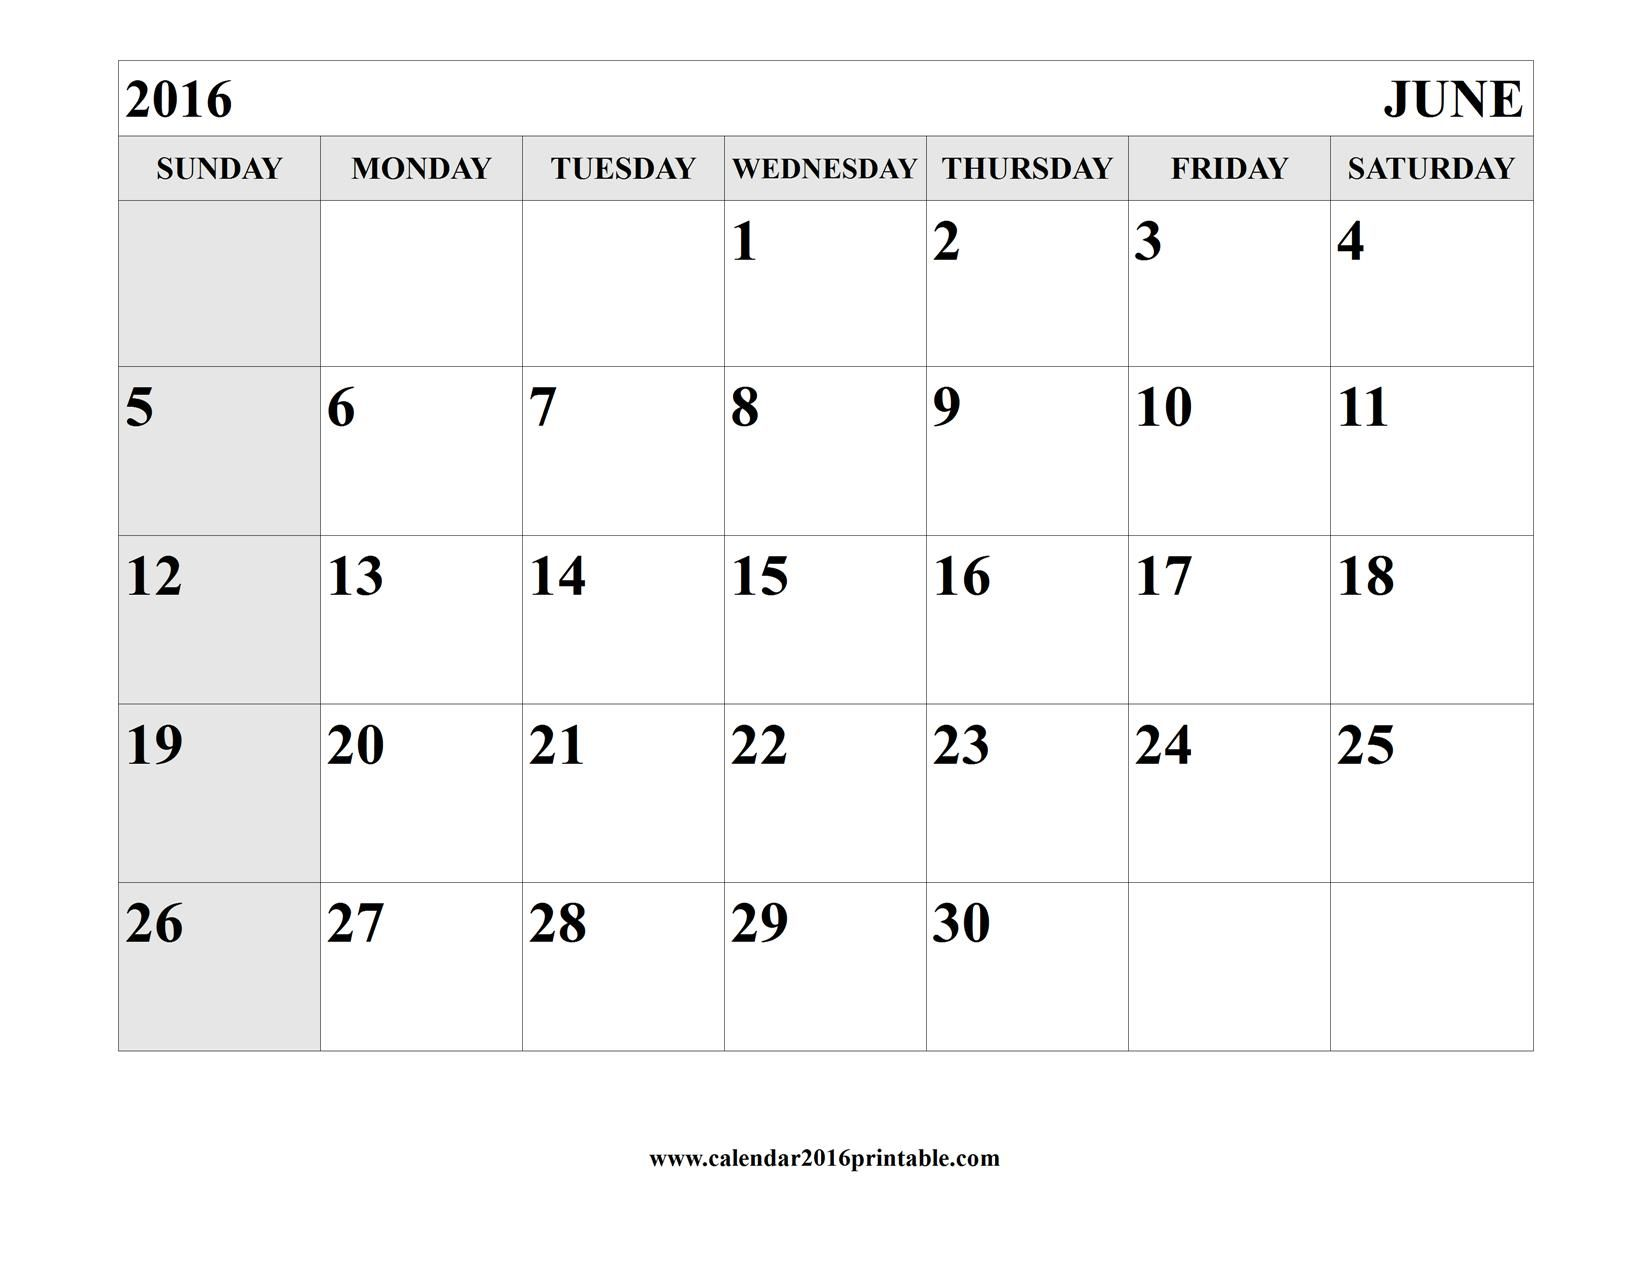 june 2016 calendar printable template free to download and print